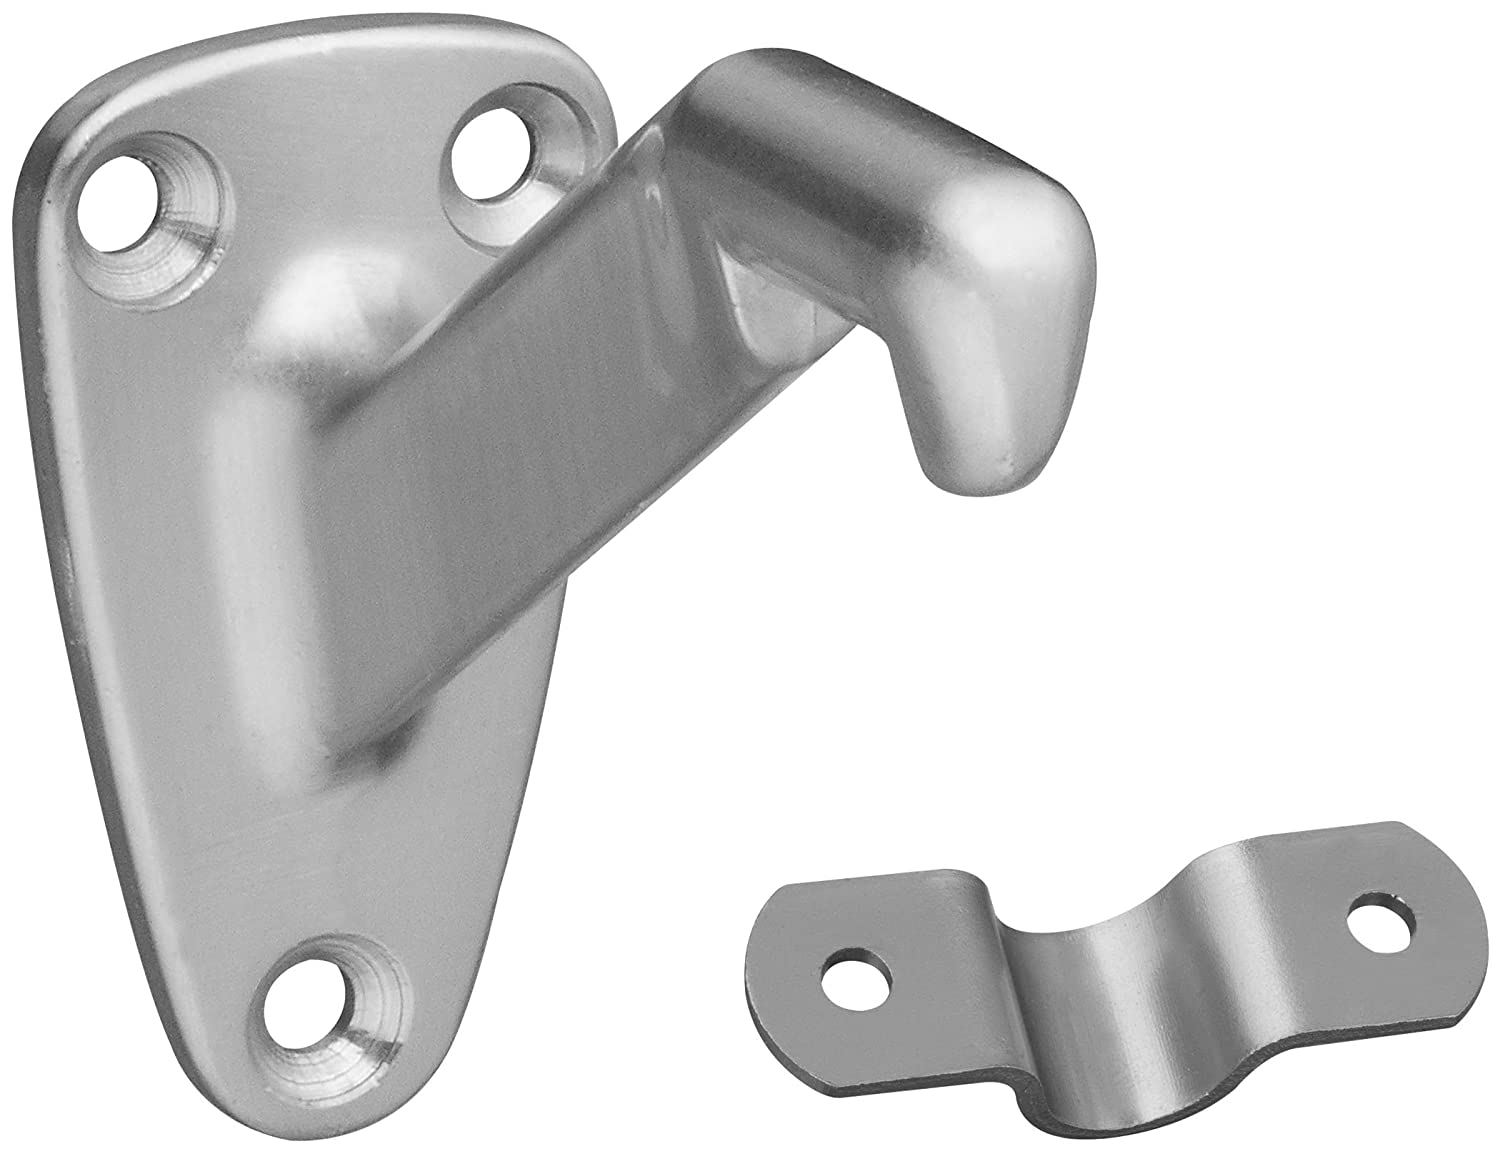 Amazon.com: National Hardware S807-552 V8025 Heavy Duty Handrail ...